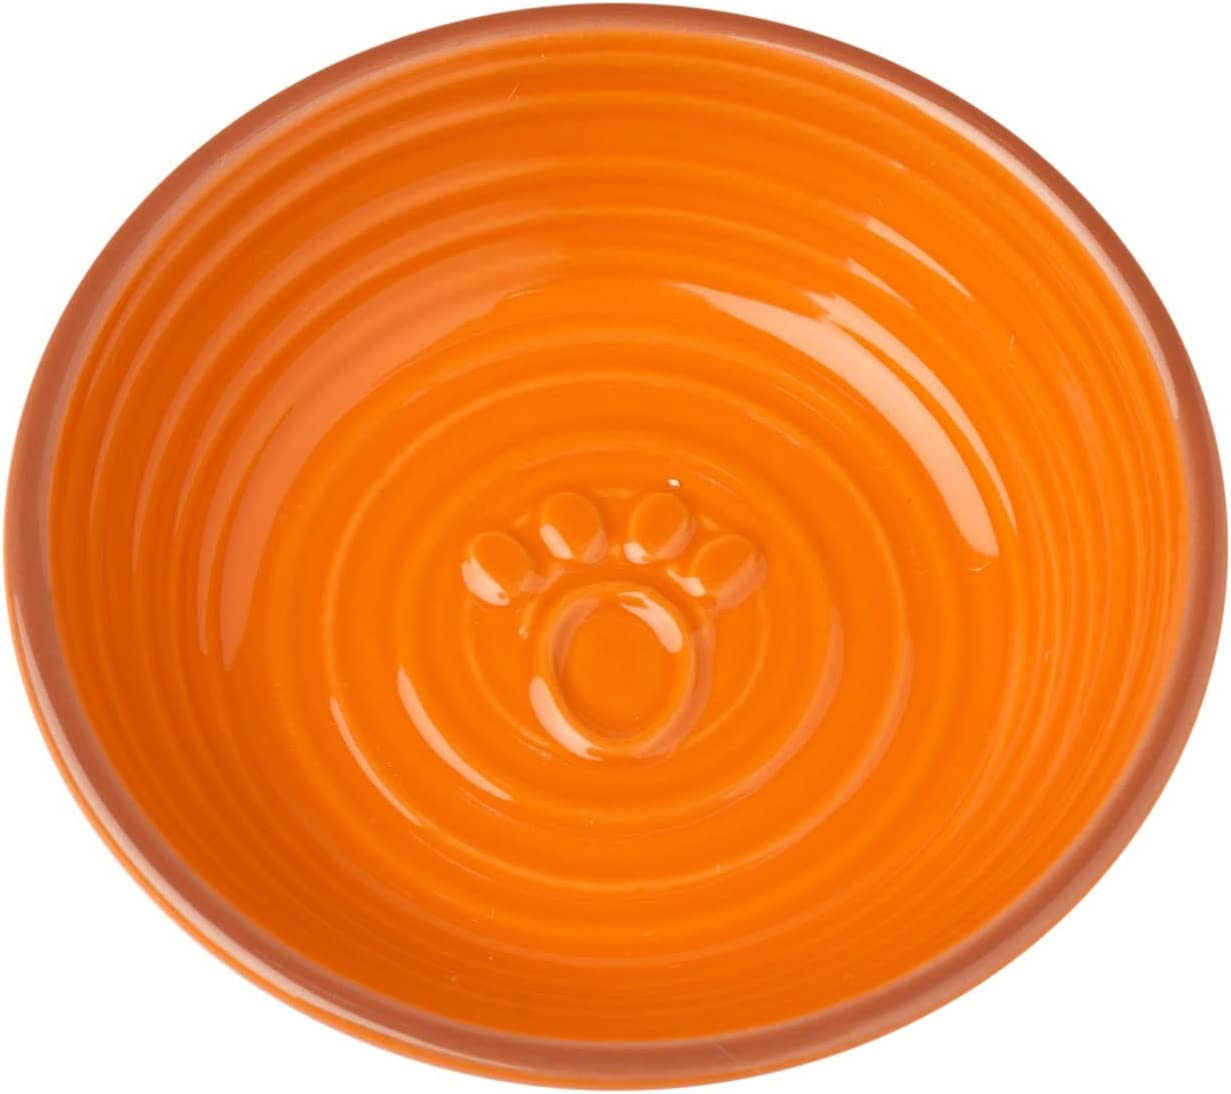 PetRageous 13043 Key West Embossed Paw Stoneware Saucer 5-Inch Diameter and 1.25-Inch Tall Saucer with 6-Ounce Capacity and Dishwasher and Microwave Safe for Small Dogs and Cats, Orange